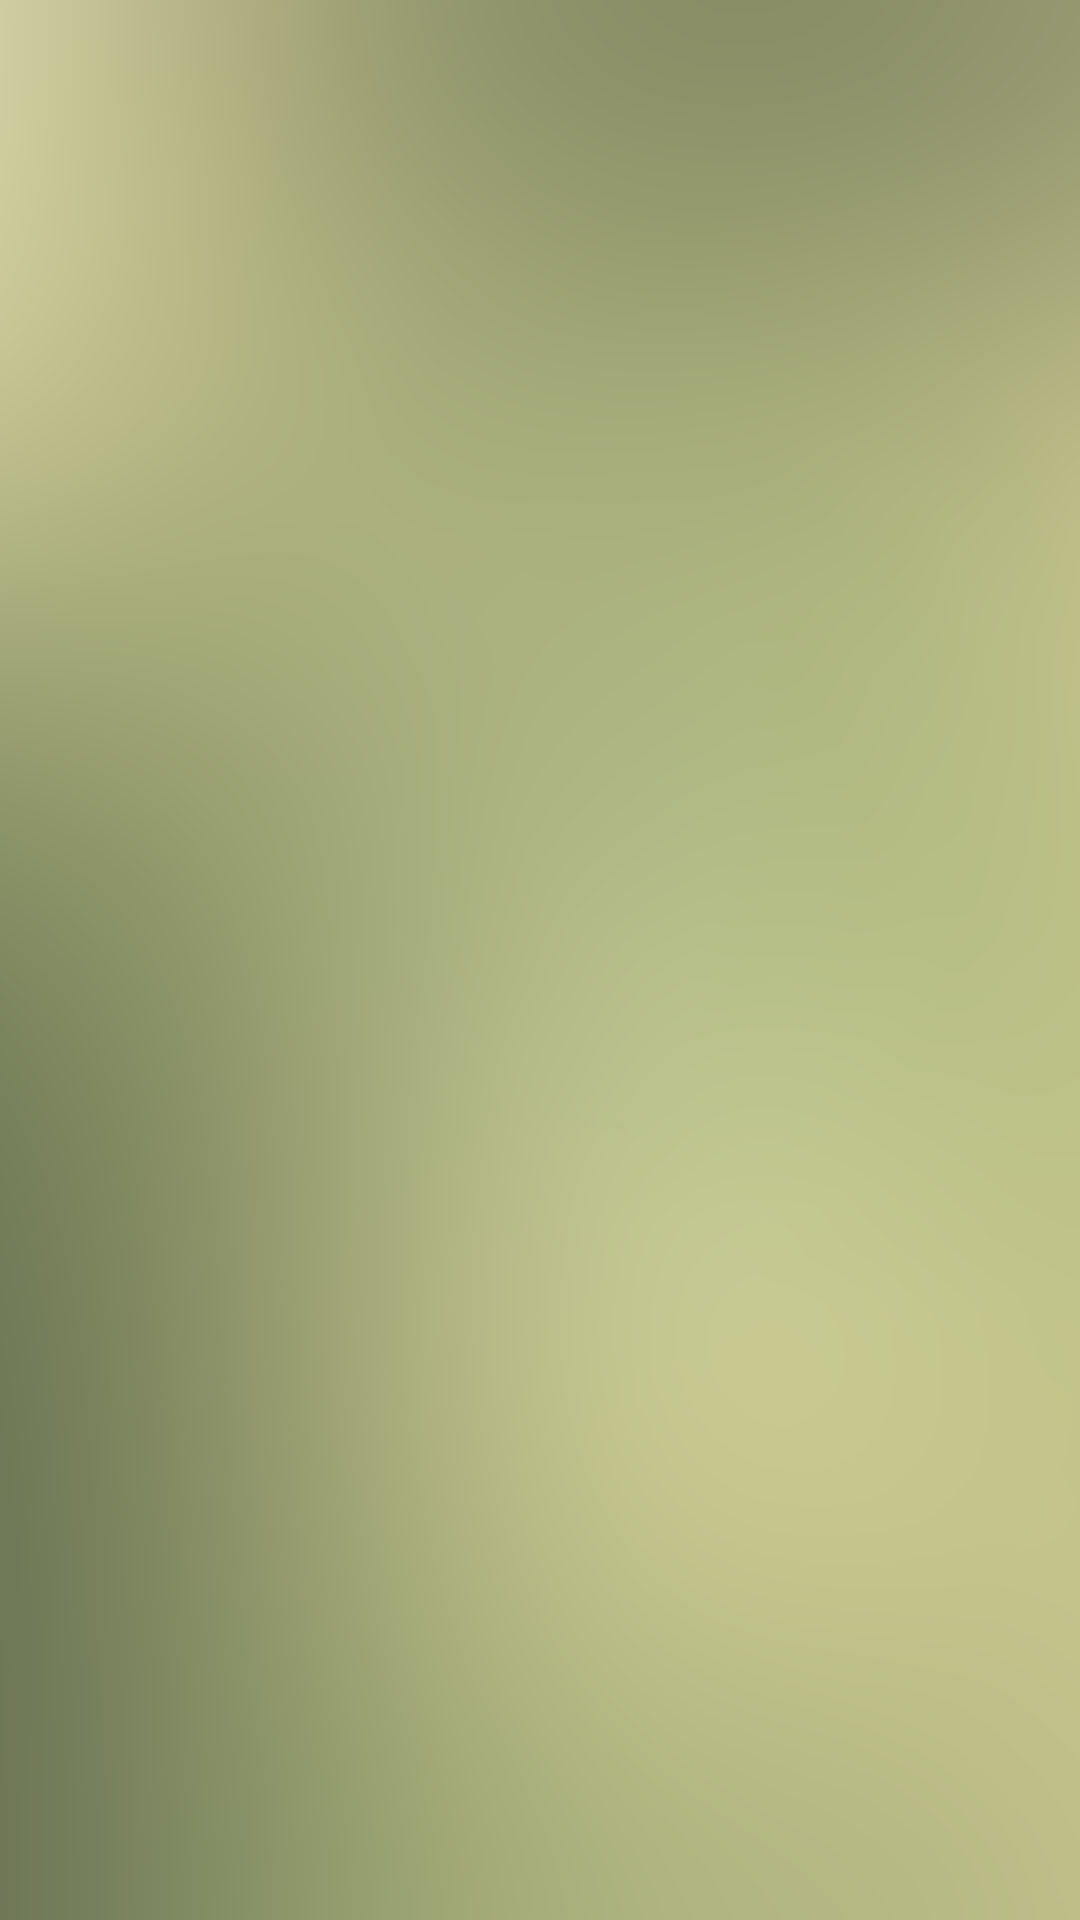 1080x1920 Nature Light Green Gradient Android Wallpaper ...